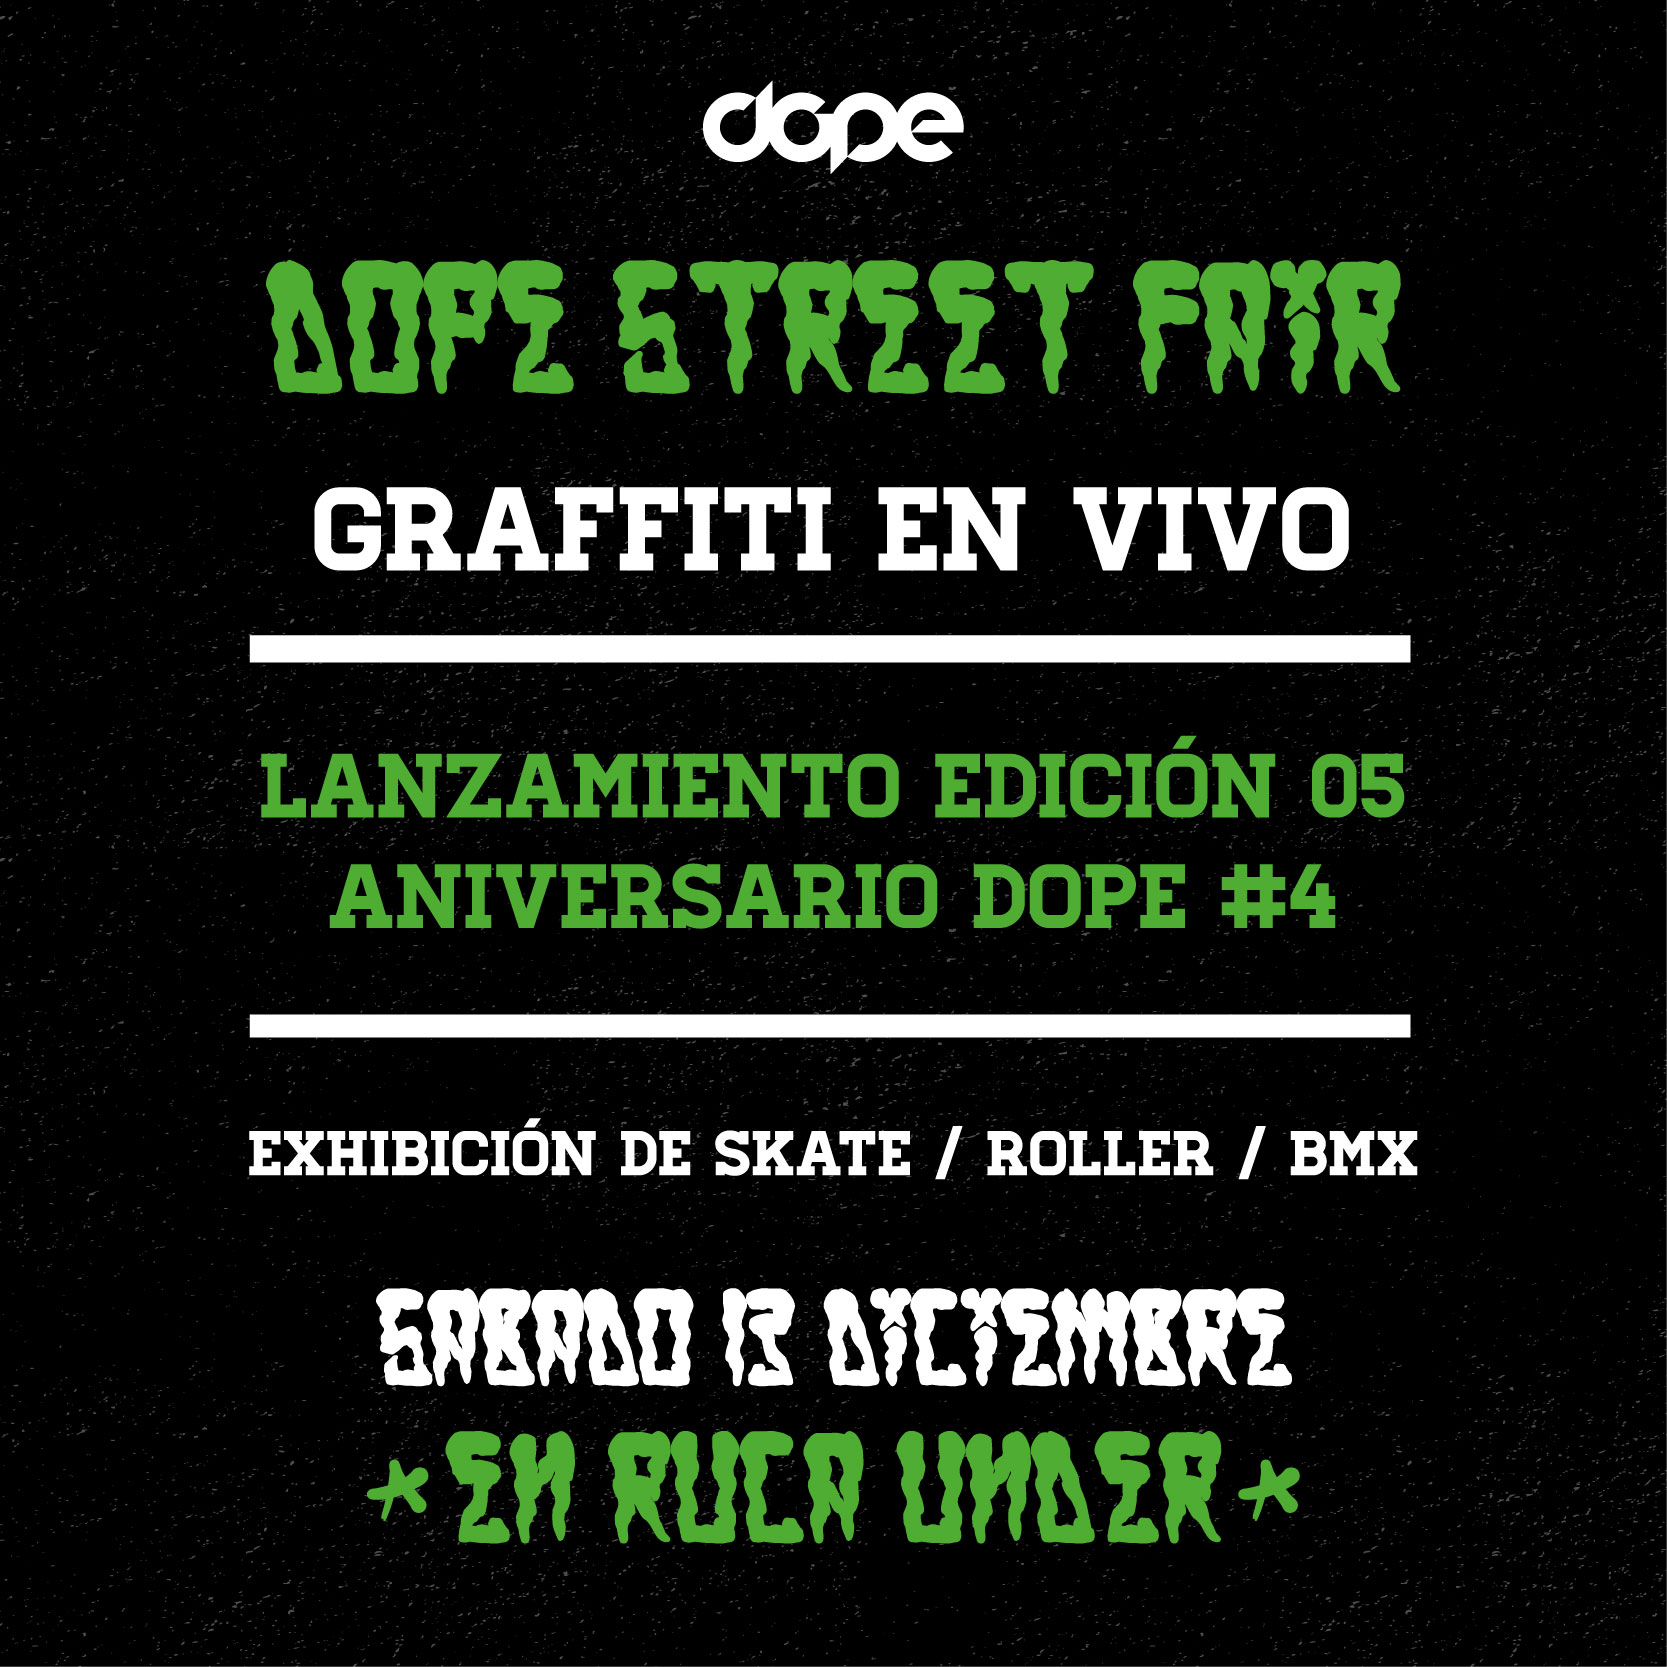 dope-evento banner-03